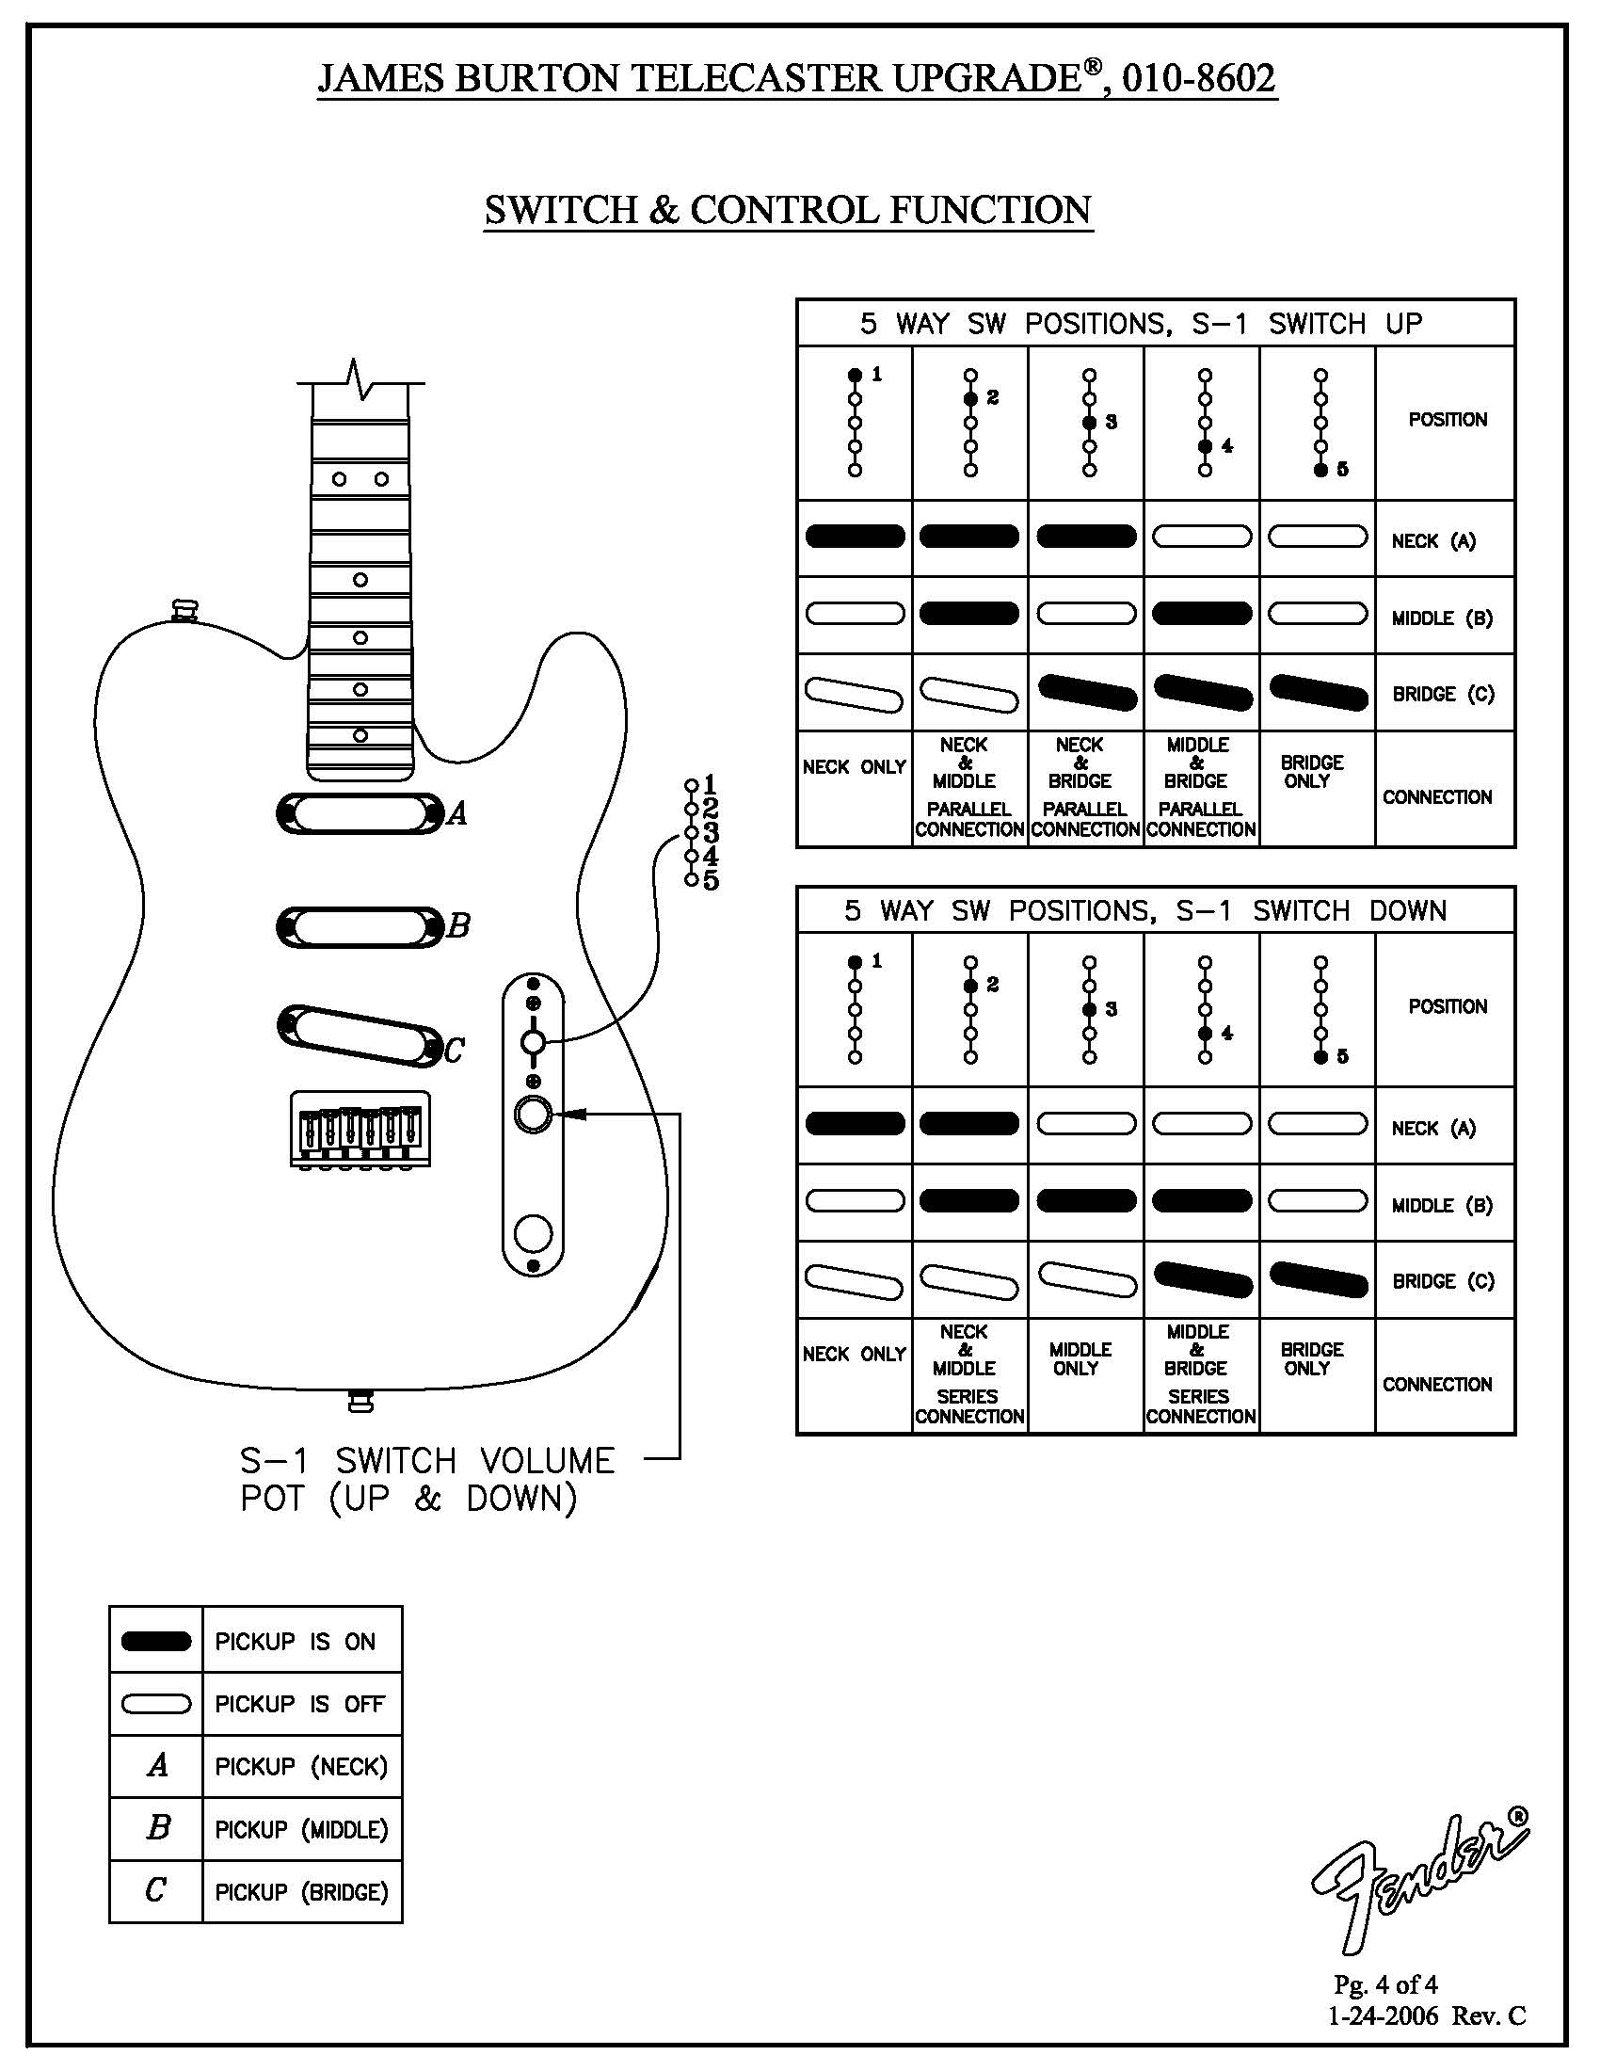 james burton telecaster wiring diagram